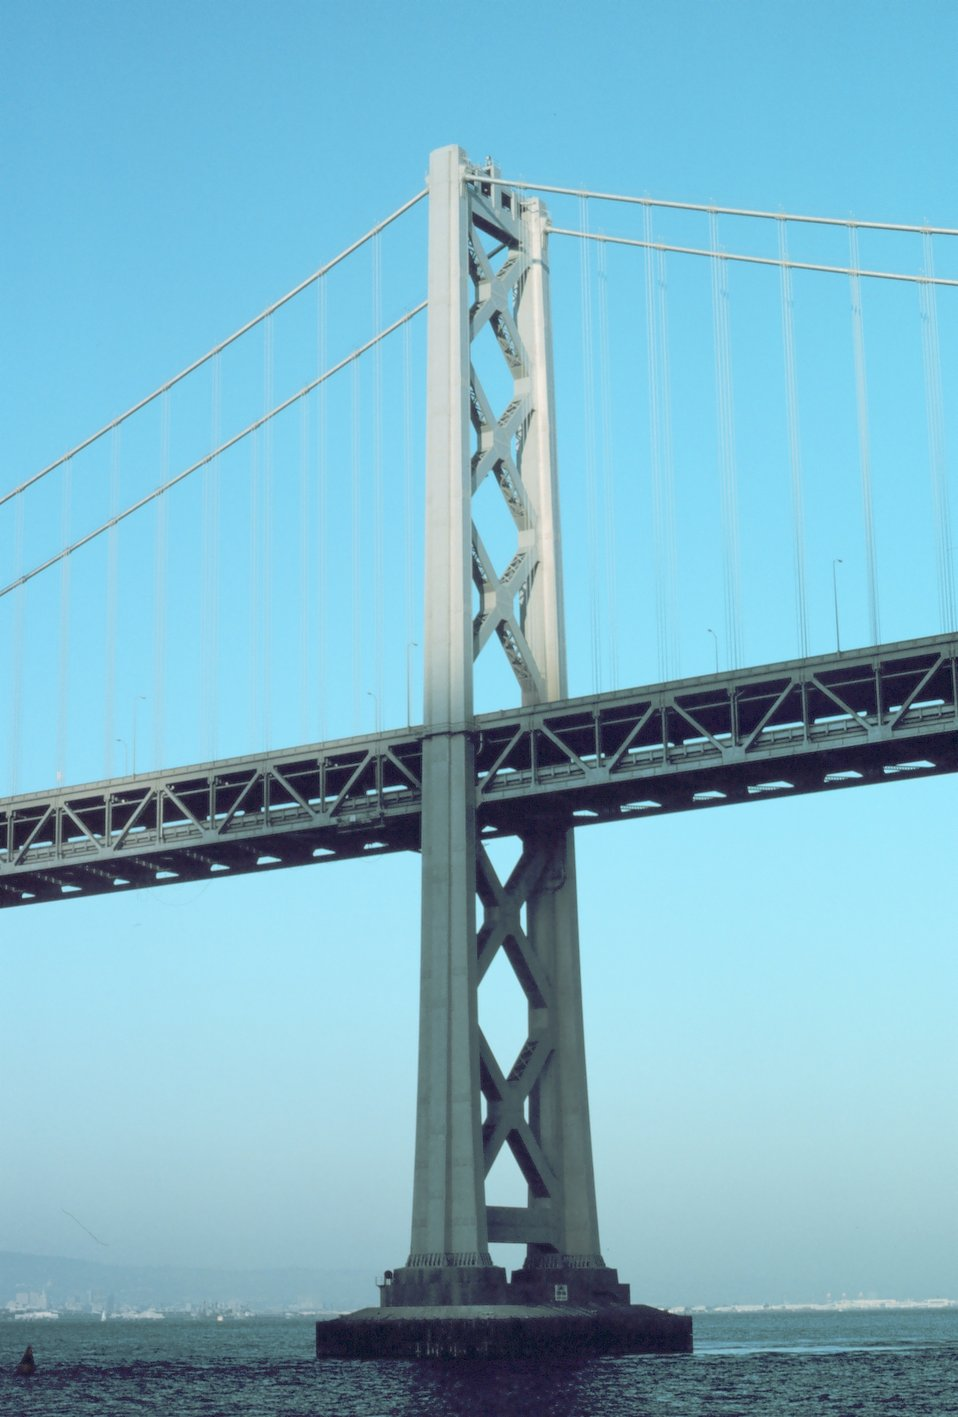 A tower of the San Francisco-Oakland Bay Bridge.